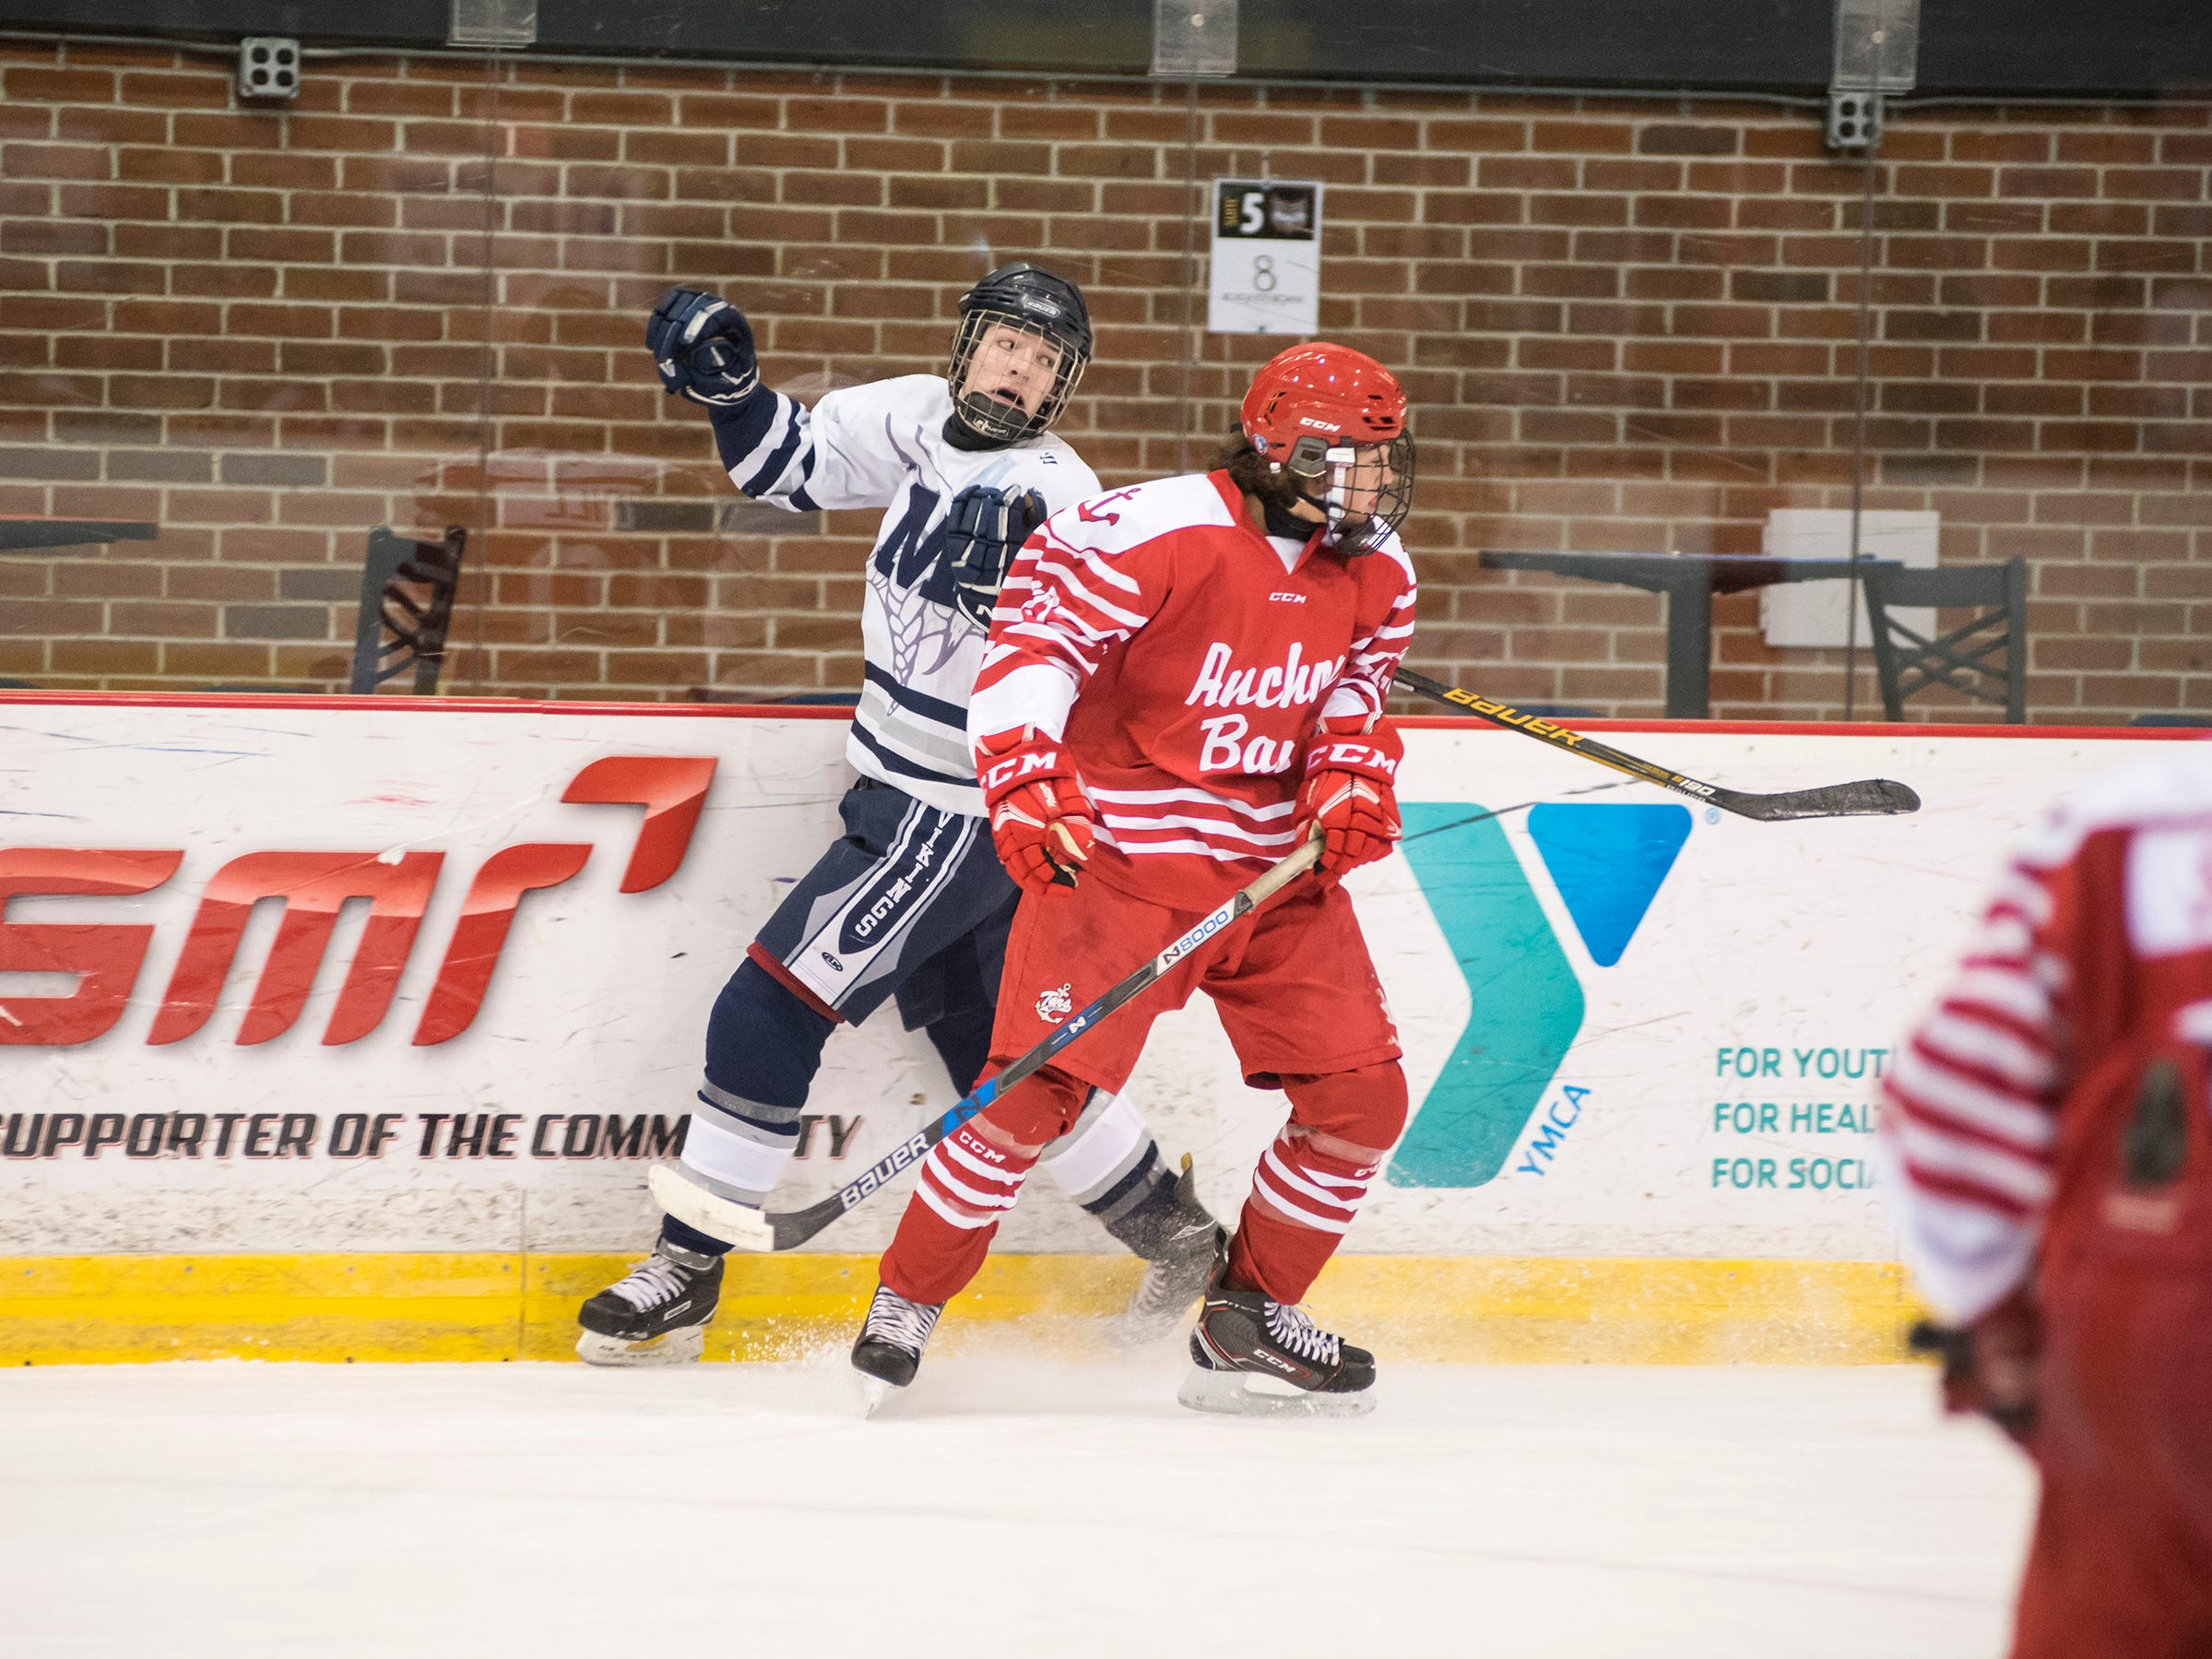 Anchor Bay High School defense James Skorupski (right) holds Marysville High School forward Hunter Miller against the wall during the Larry Manz Holiday Hockey Tournament Friday, Nov. 23, 2018 at McMorran Arena.